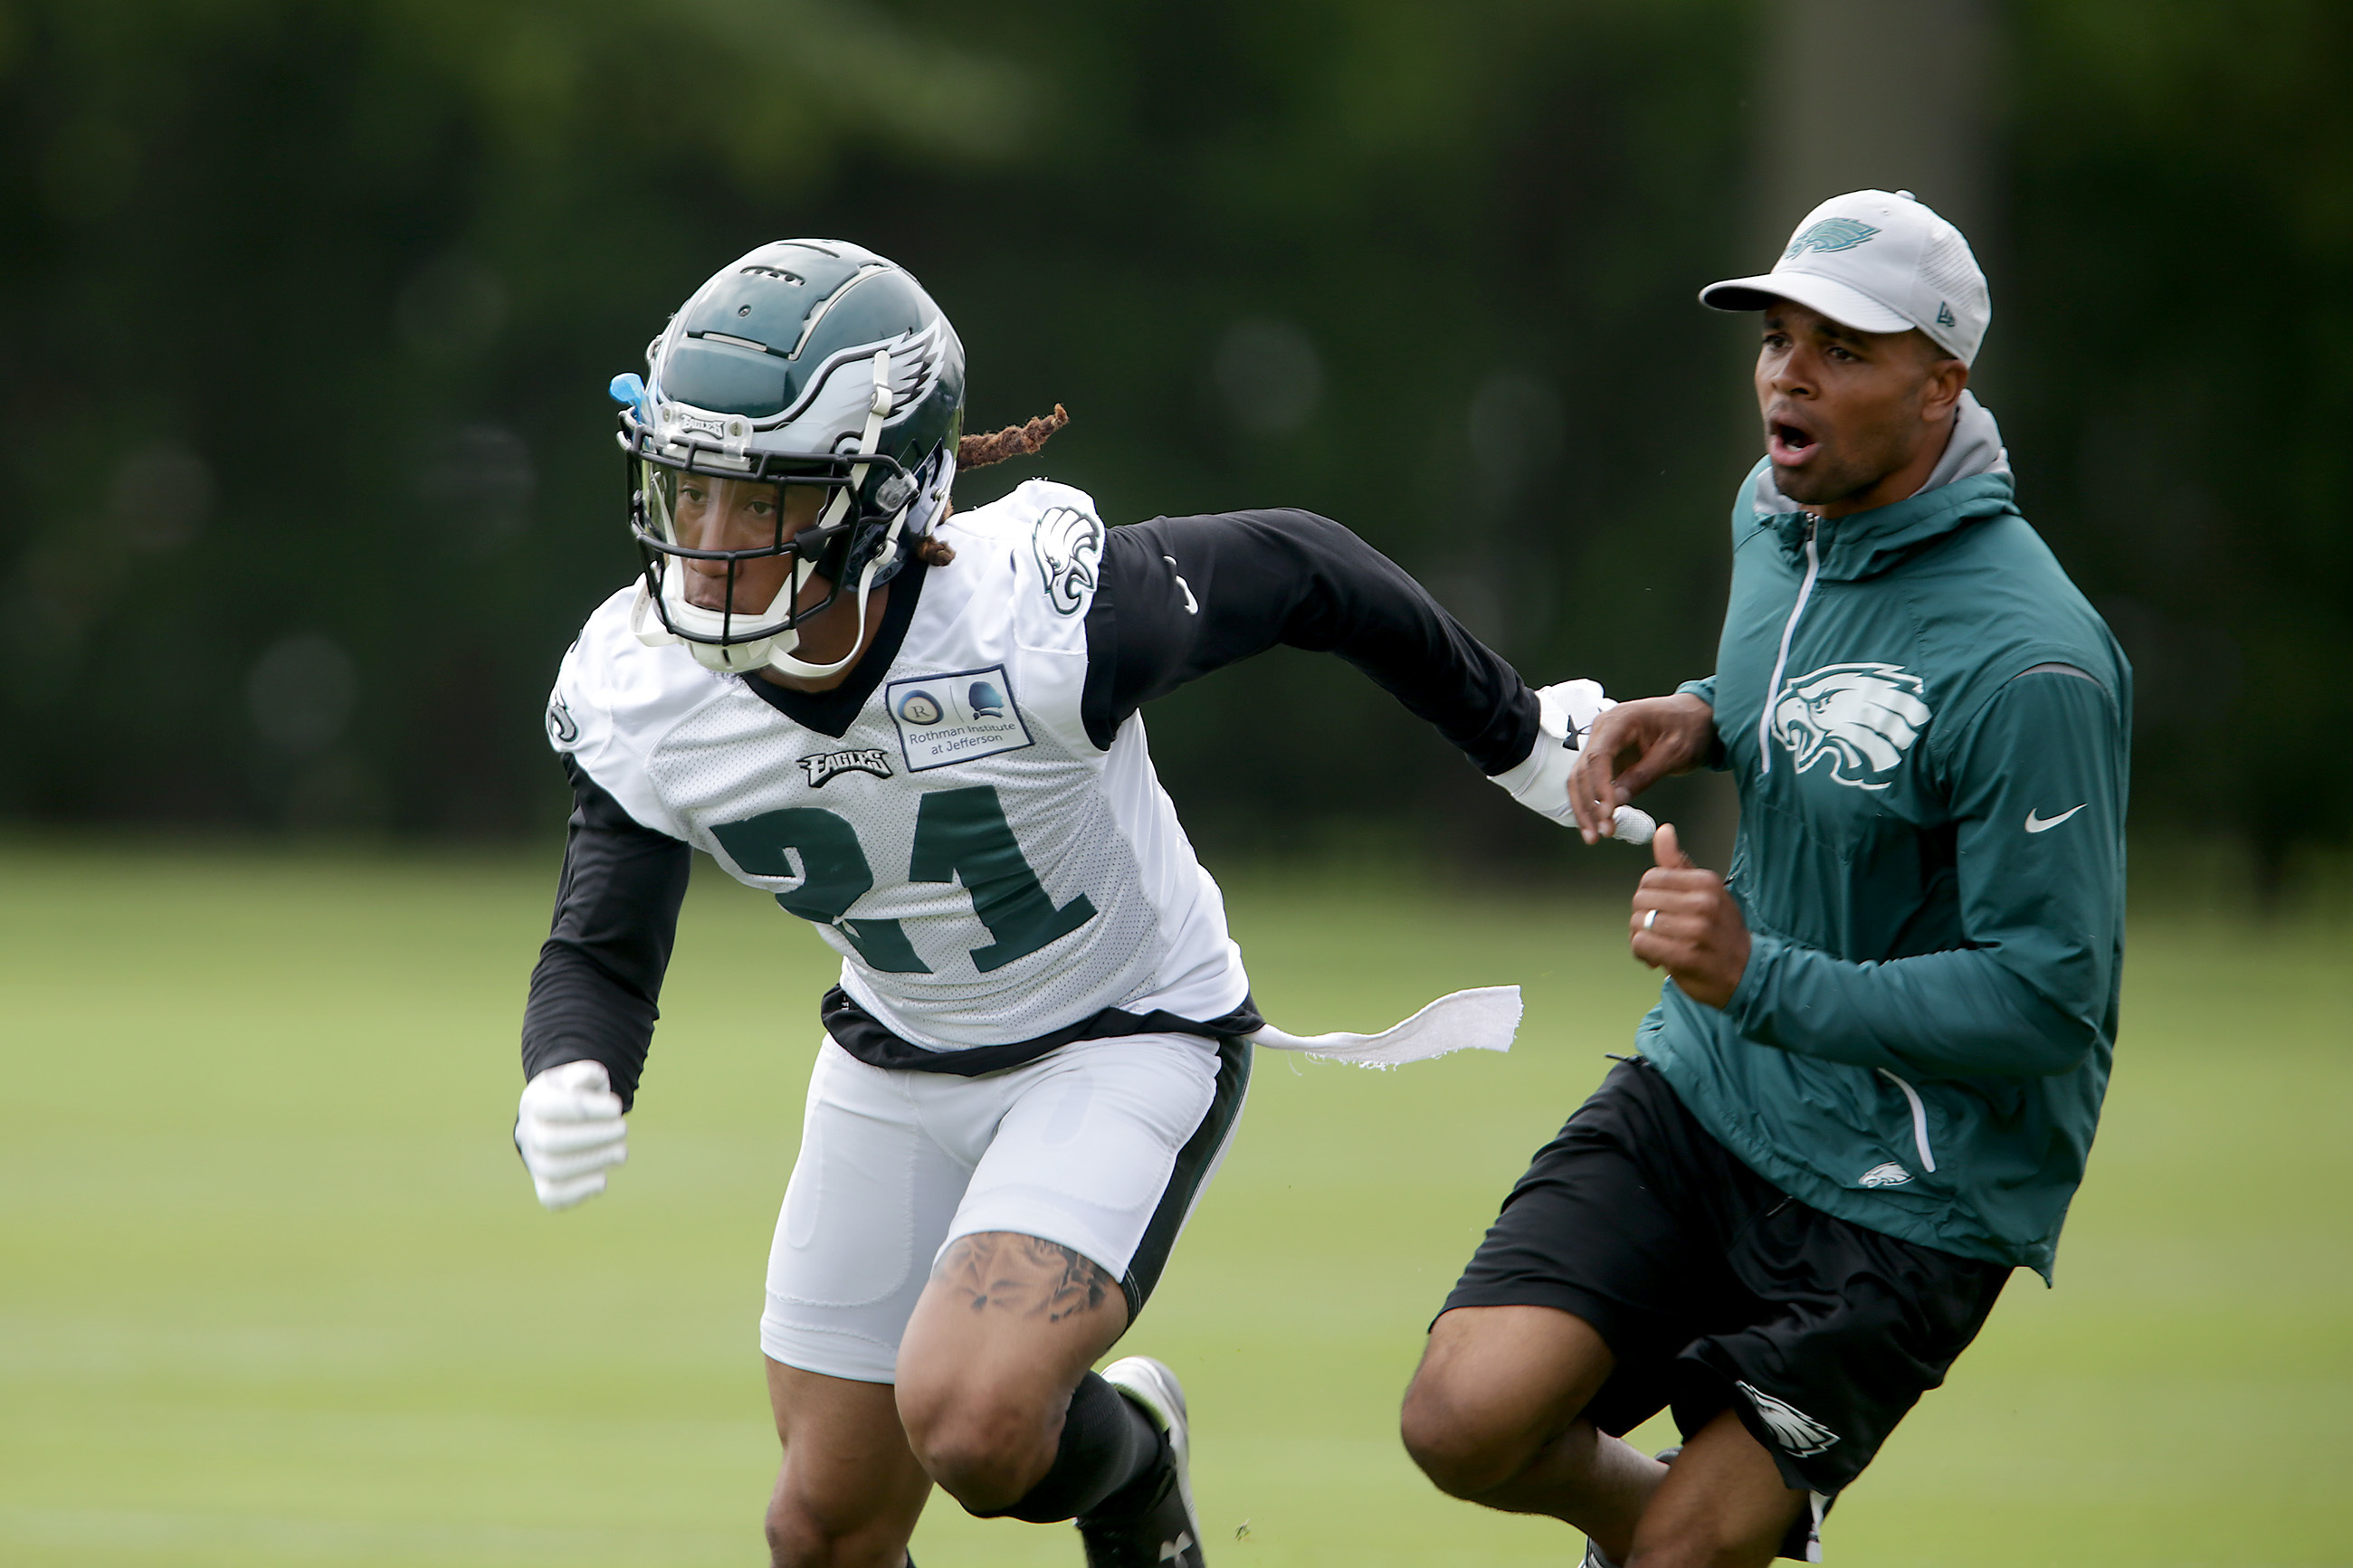 Eagles´ corner Ronald Darby, left, runs through a drill as the Eagles hold OTA´s at the NovaCare Complex in Philadelphia, PA on May 29, 2018.